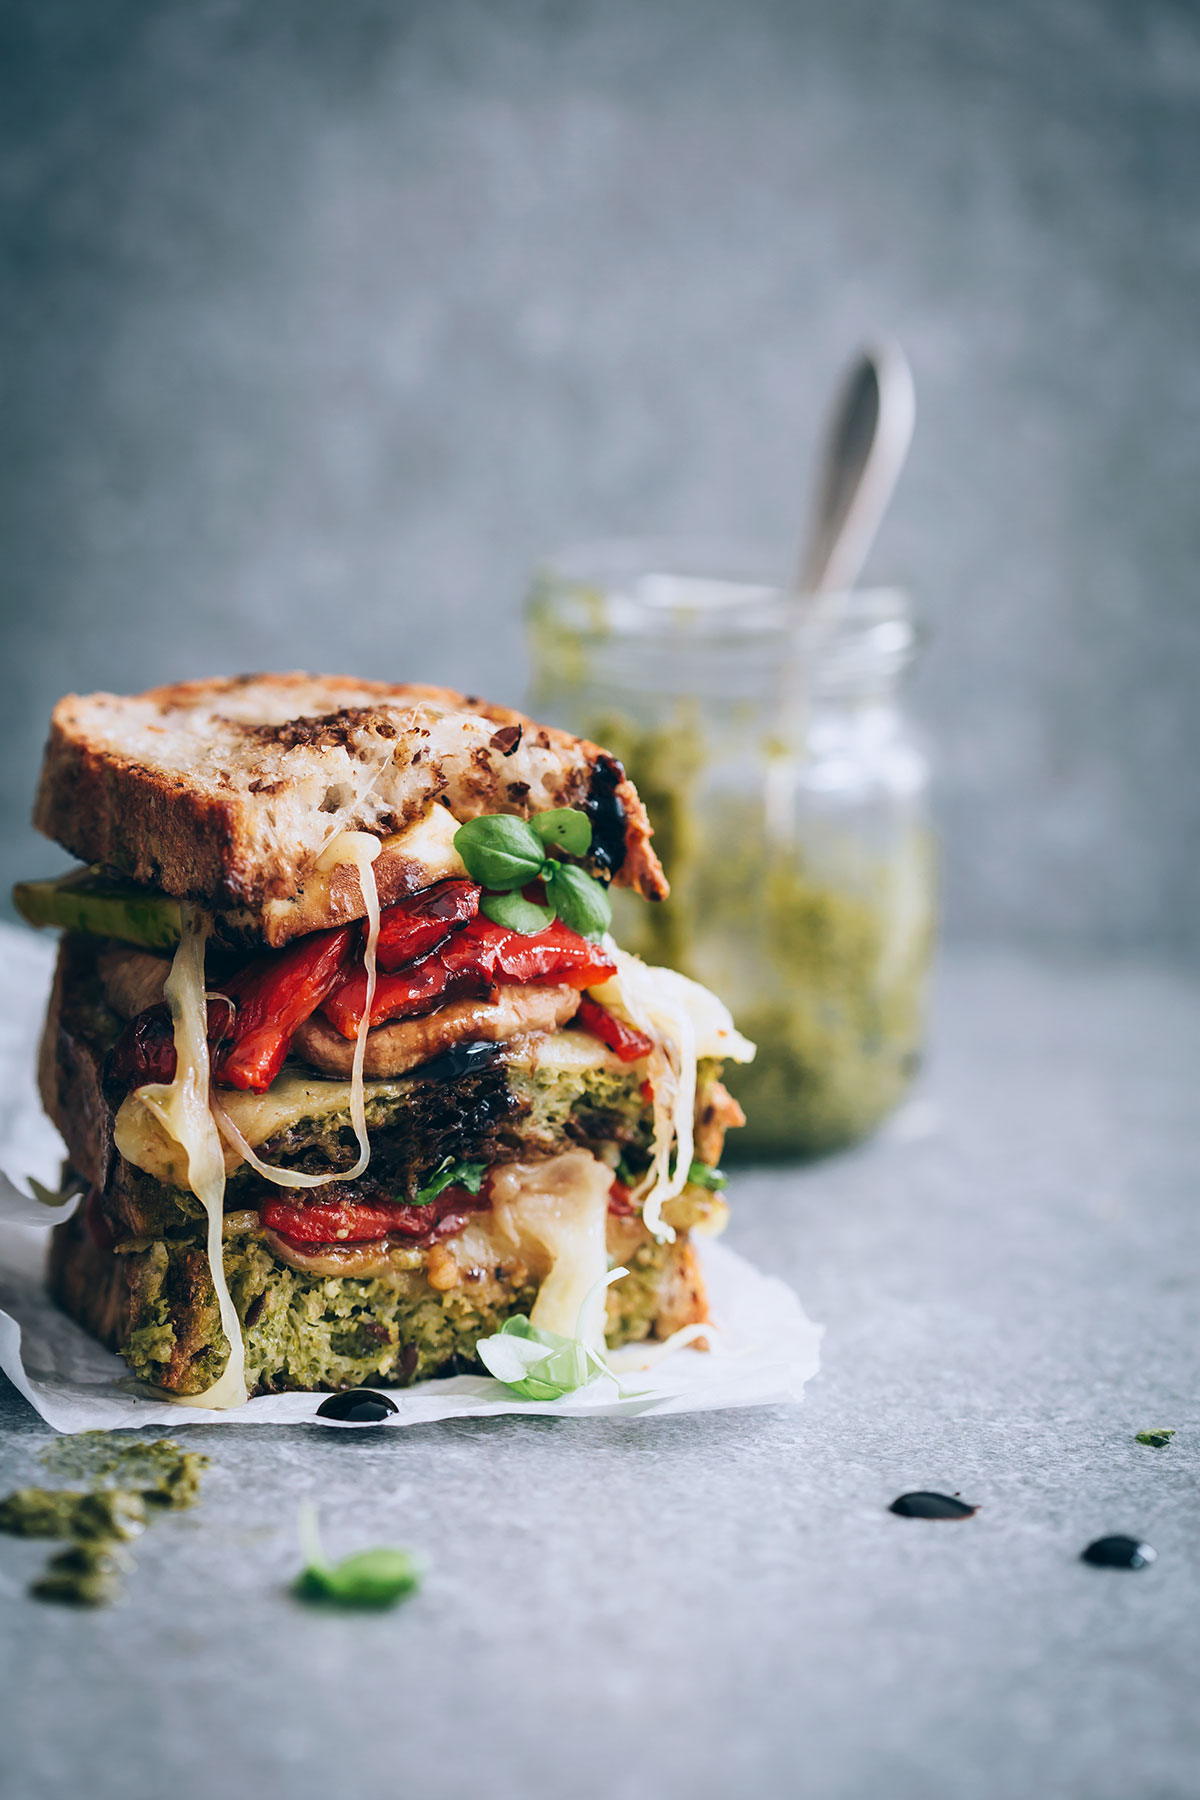 Grilled Vegetable Sandwiches with Havarti and Balsamic Drizzle